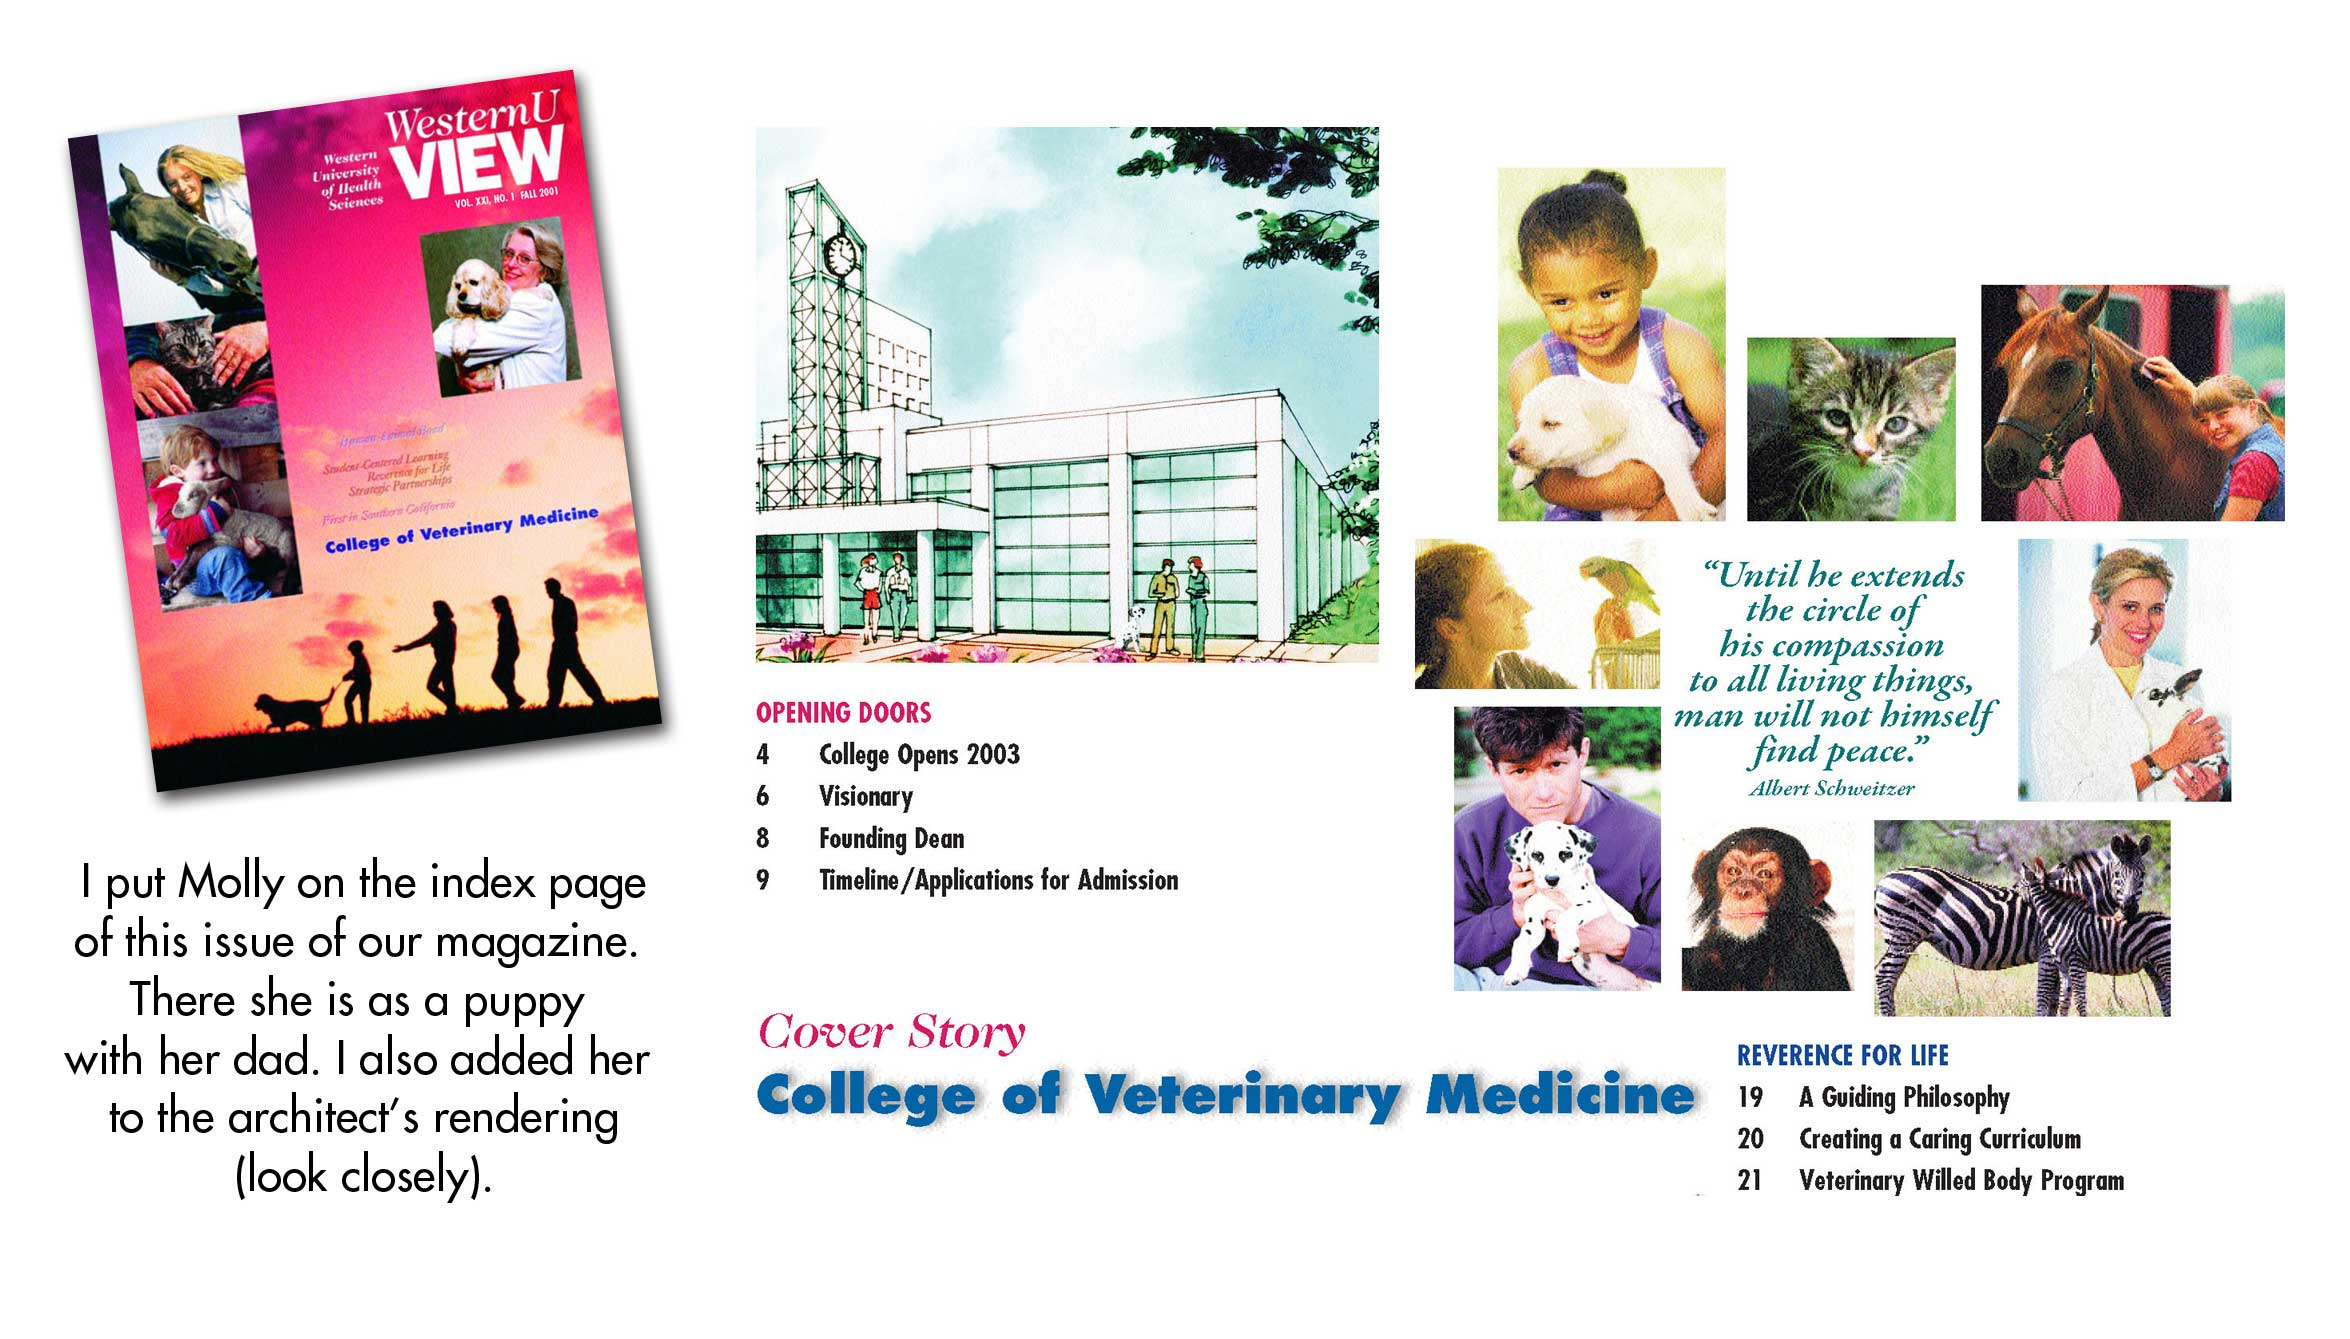 Our puppy in the WesternU View magazine